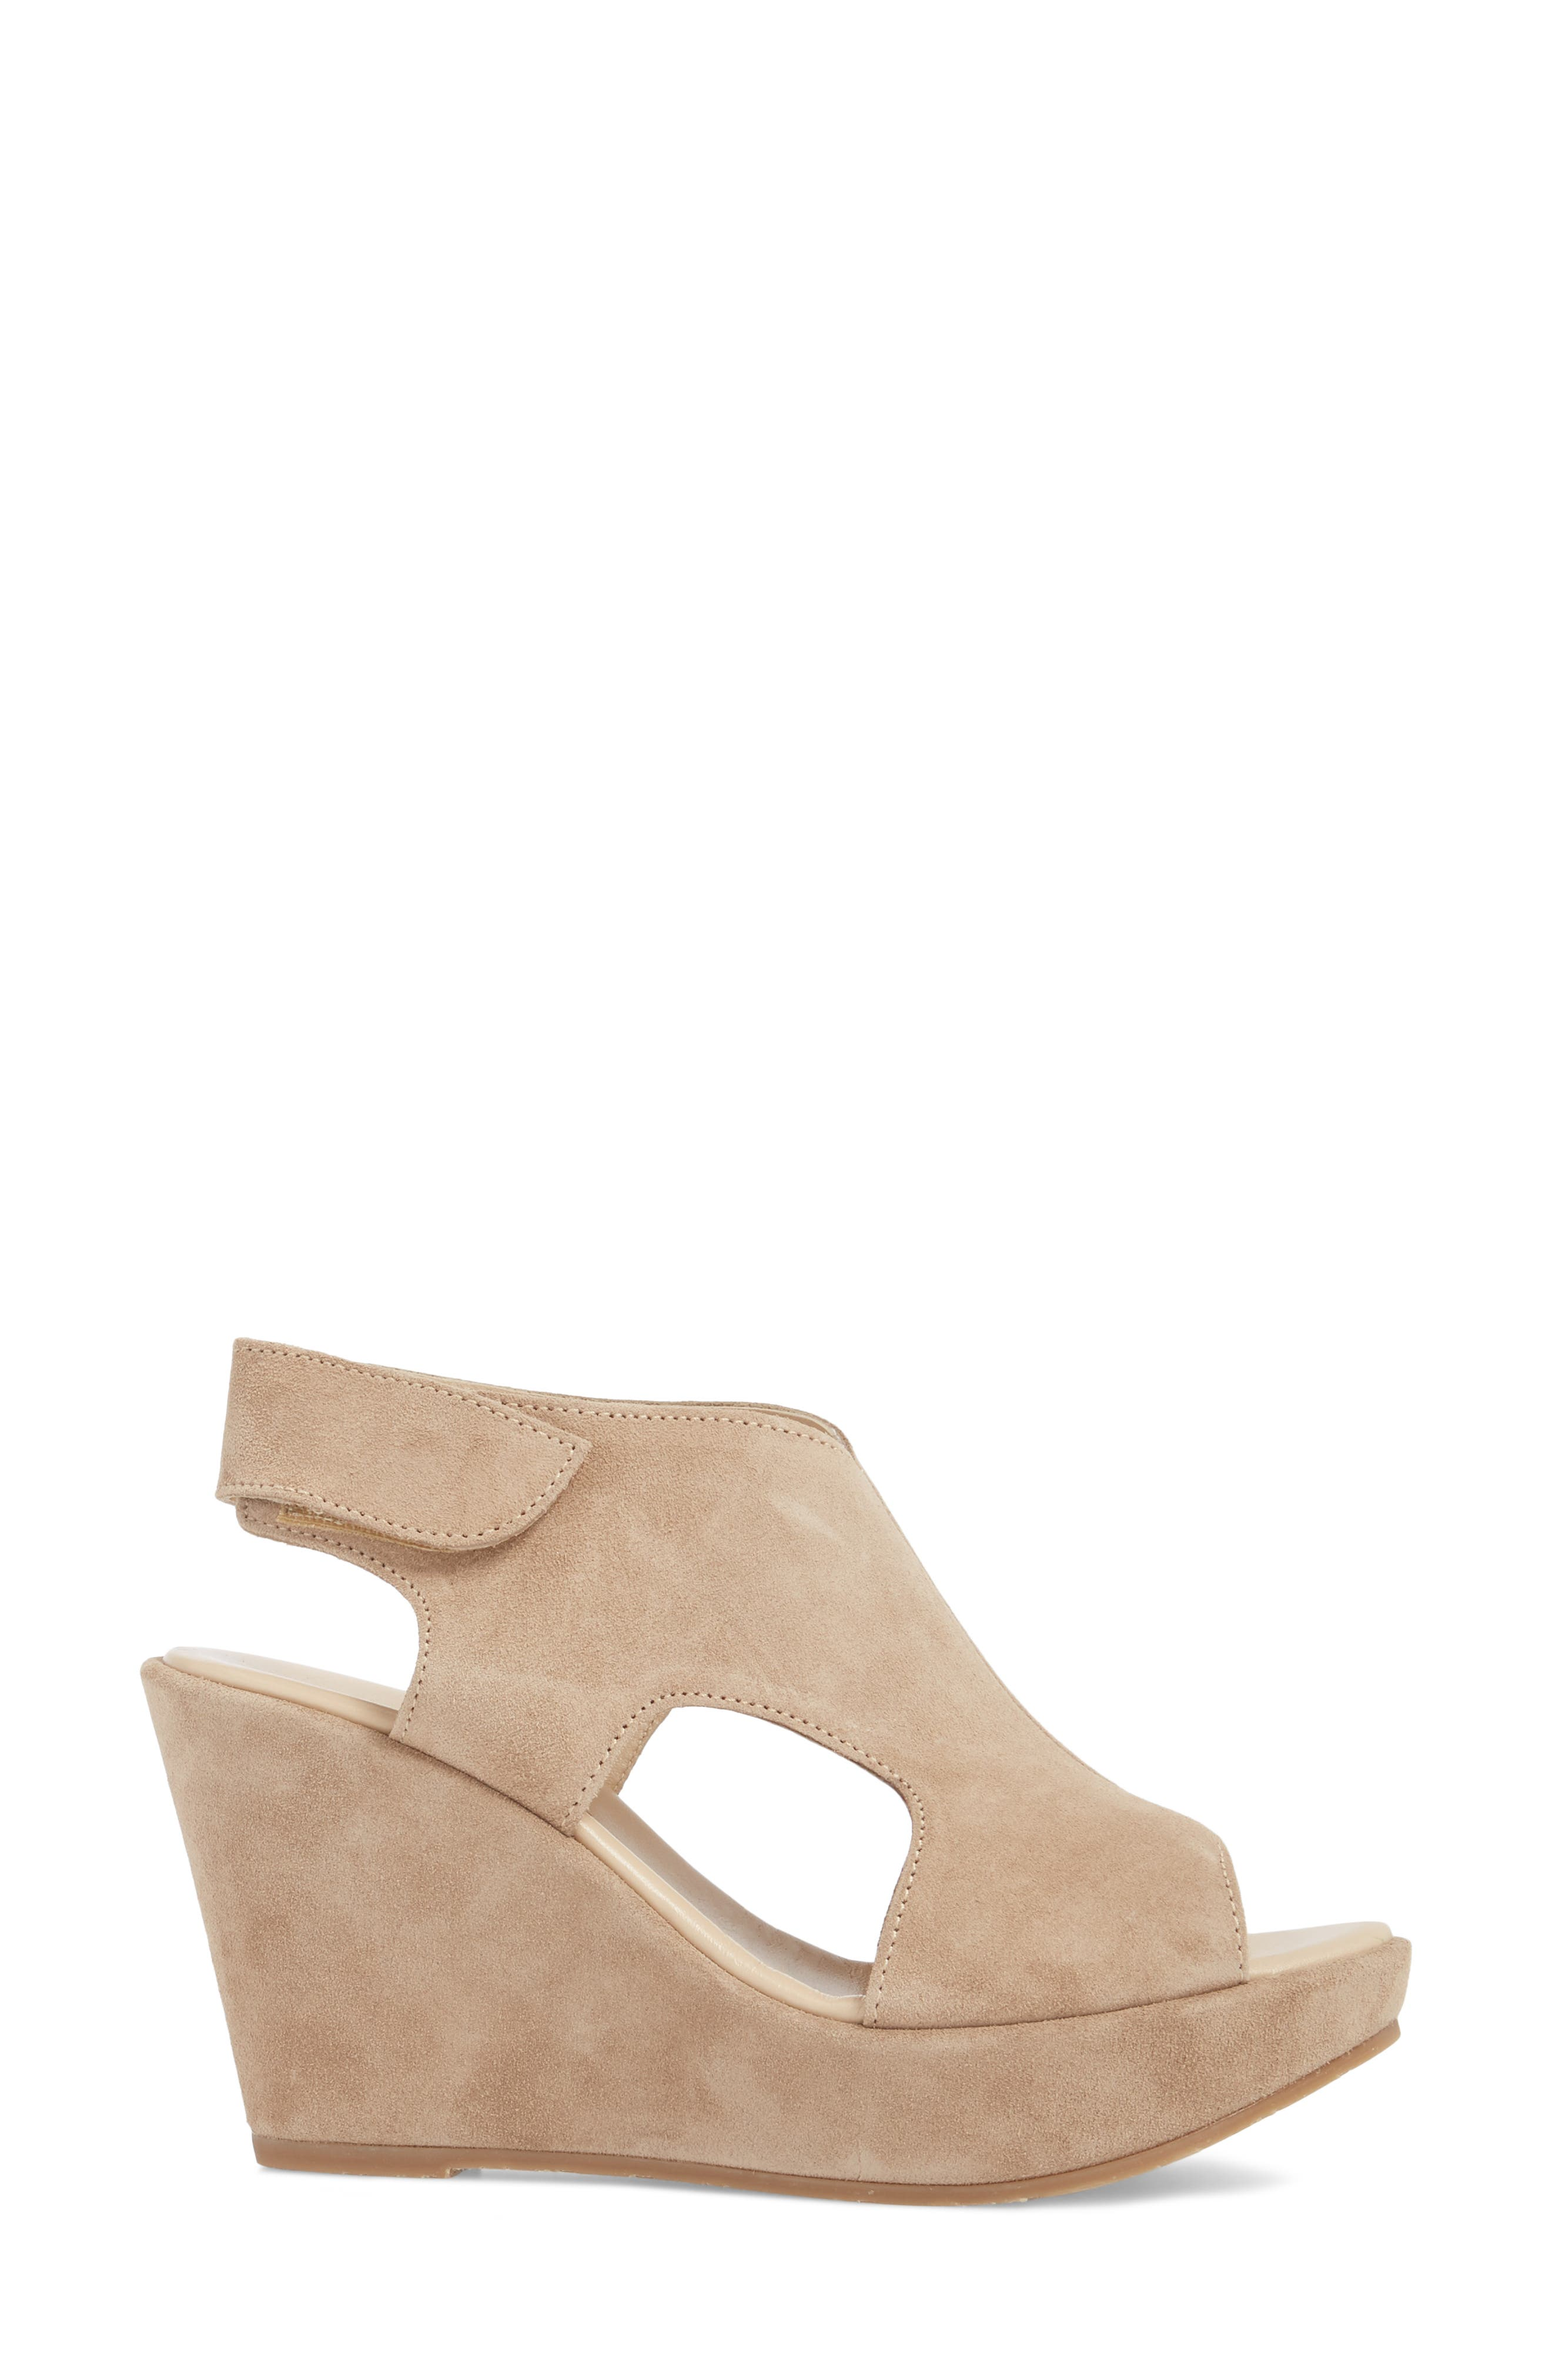 Reed Wedge Sandal,                             Alternate thumbnail 3, color,                             Corda Taupe Suede